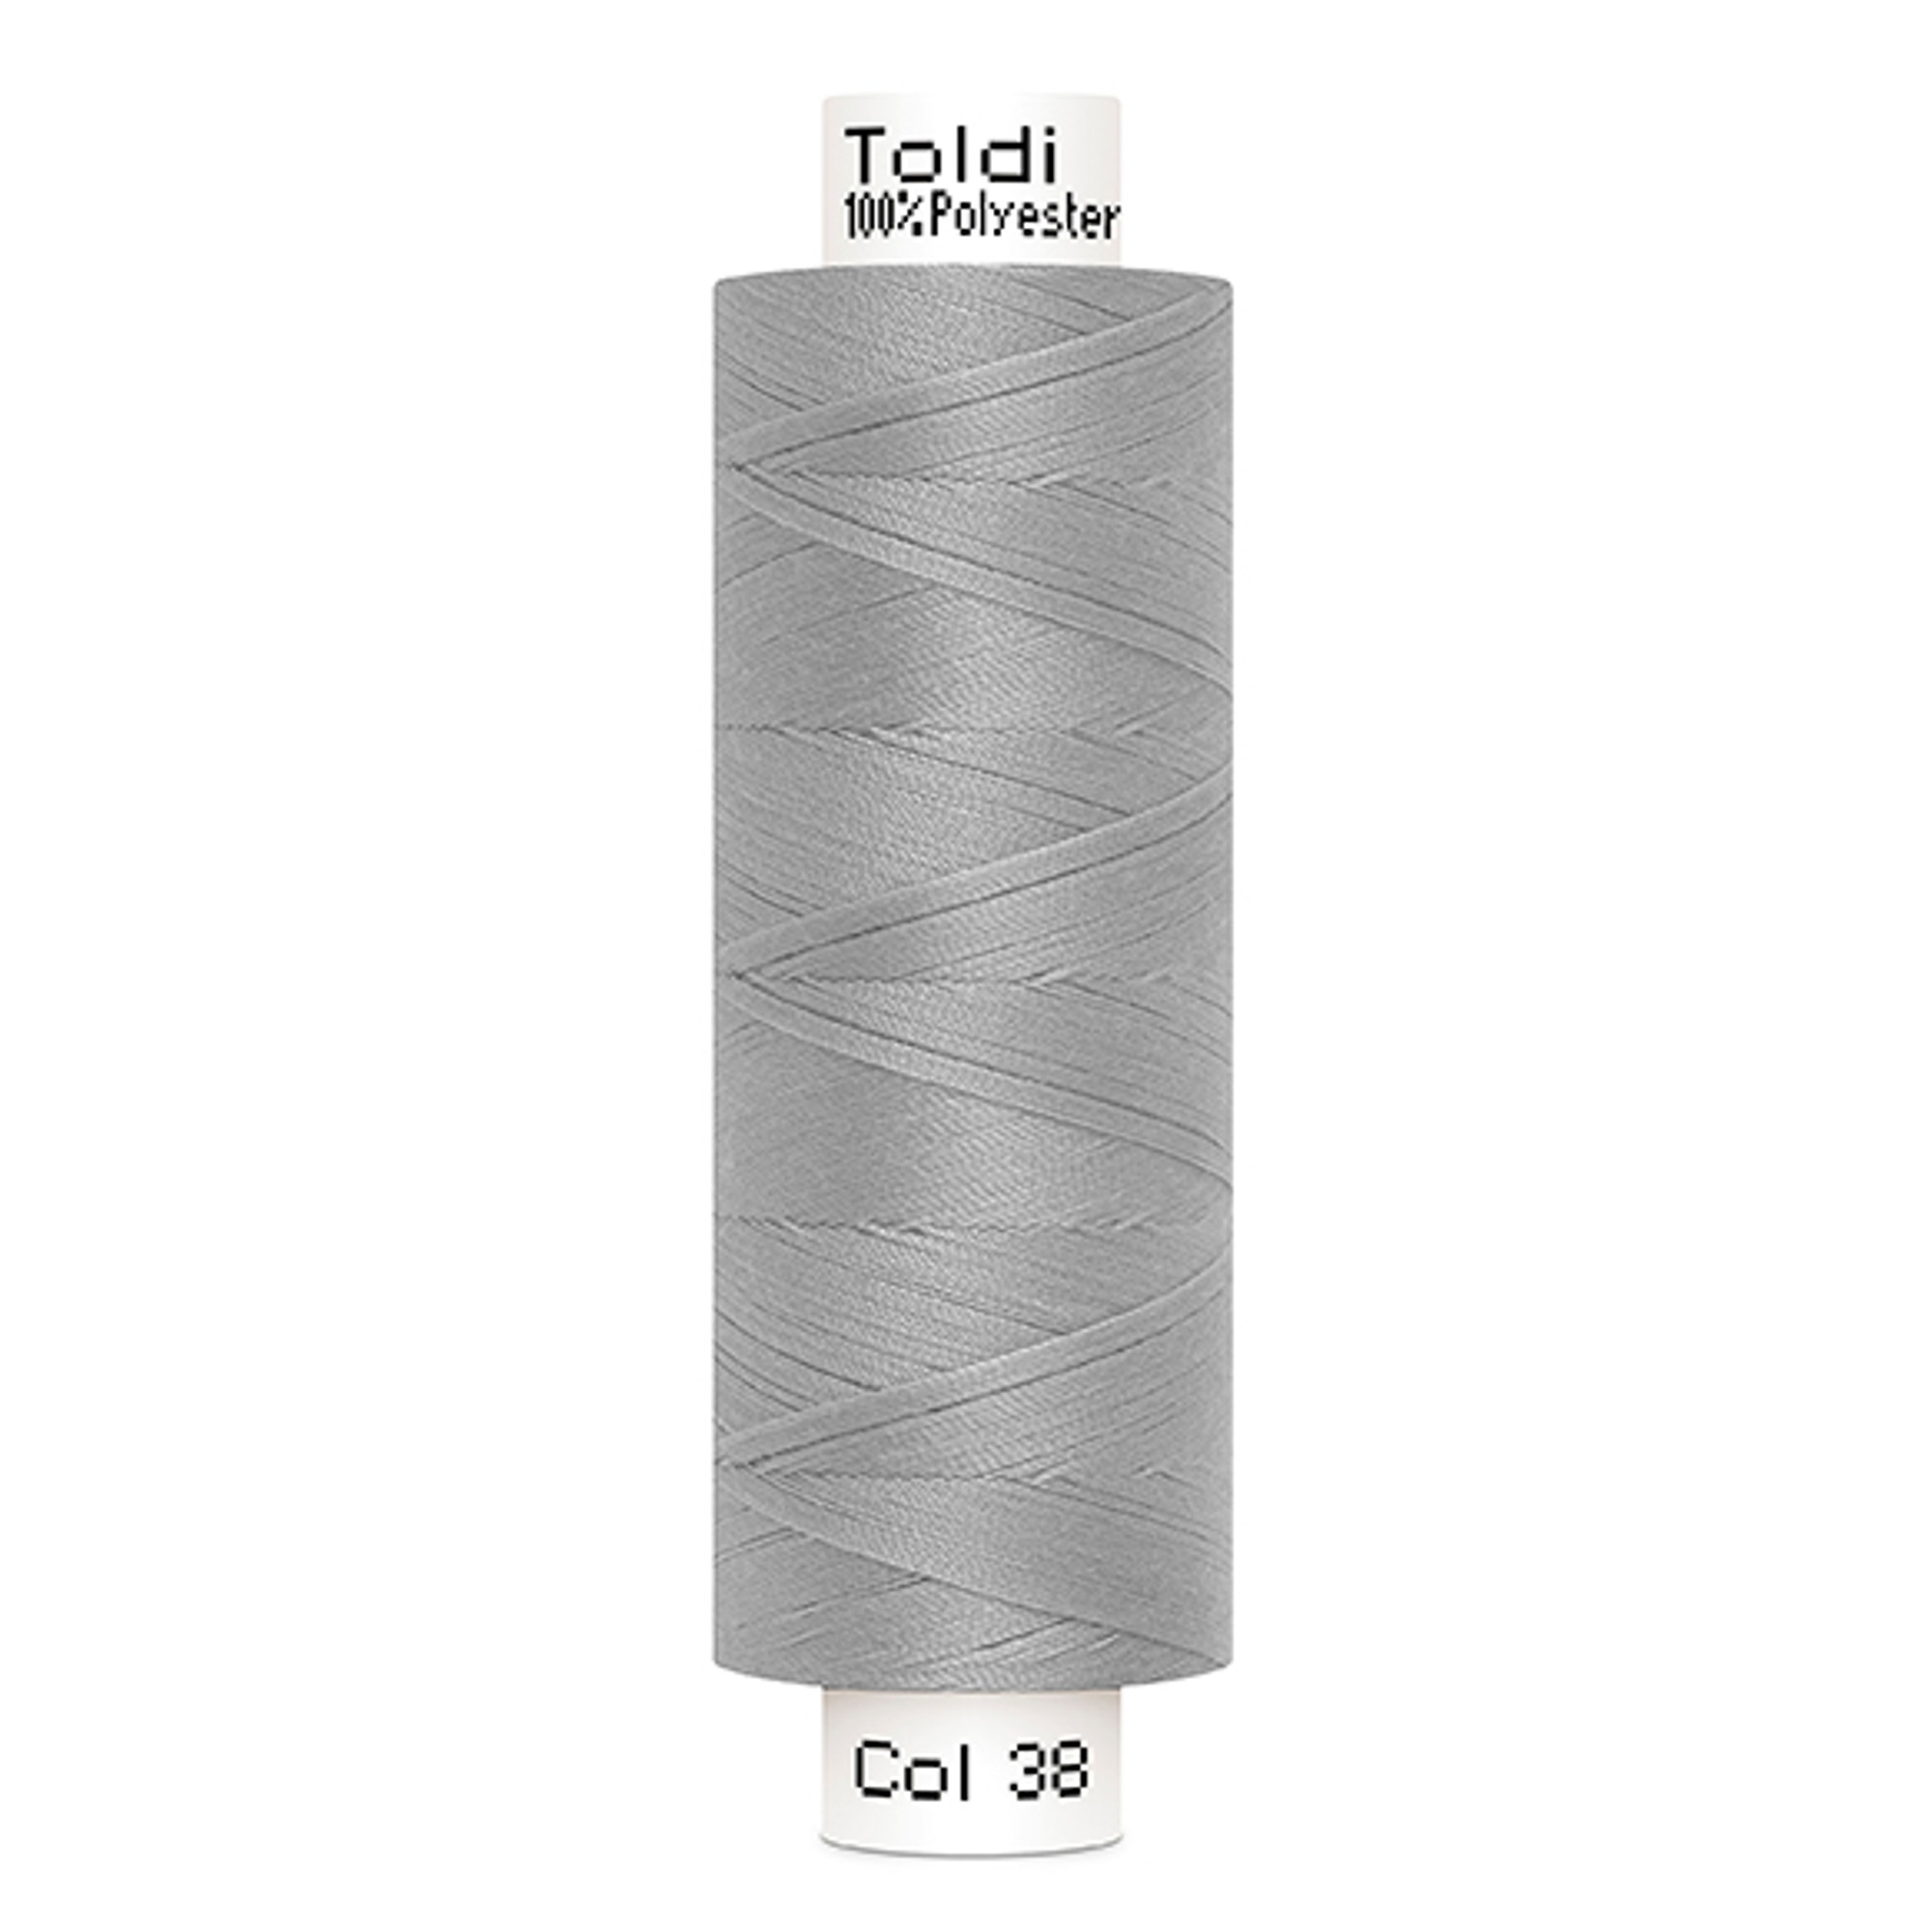 Gütermann Toldi Sewing Thread 500 m, lightgrey | 707589-38 | grau